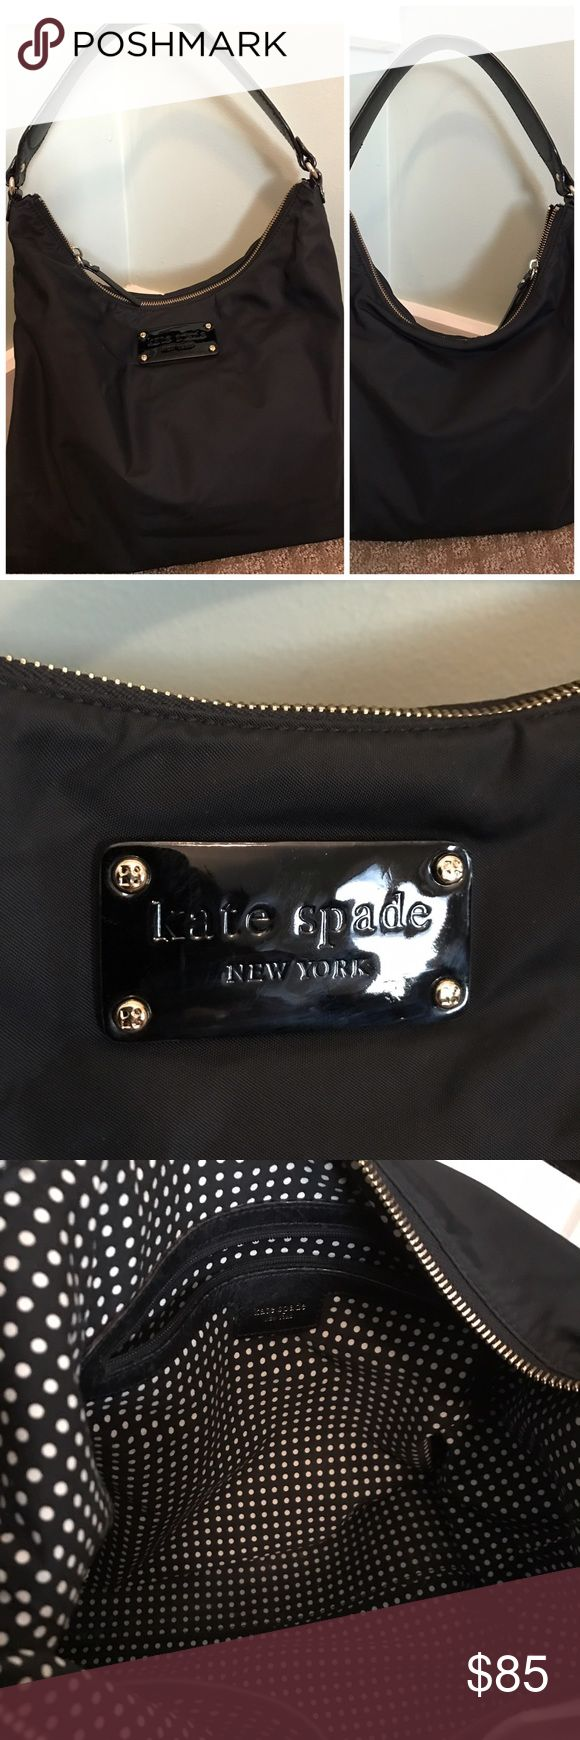 "Kate Spade Classic Black Bag Black Nylon satchel with shoulder strap. This is a durable basic black bag that is quite versatile. Clean inside and out. Kate Spade signature logo in the lining and outside the purse. Signature polkadot lining. 13.5 x 12.5"" One zipper and two slip pockets on the inside. kate spade Bags Shoulder Bags"